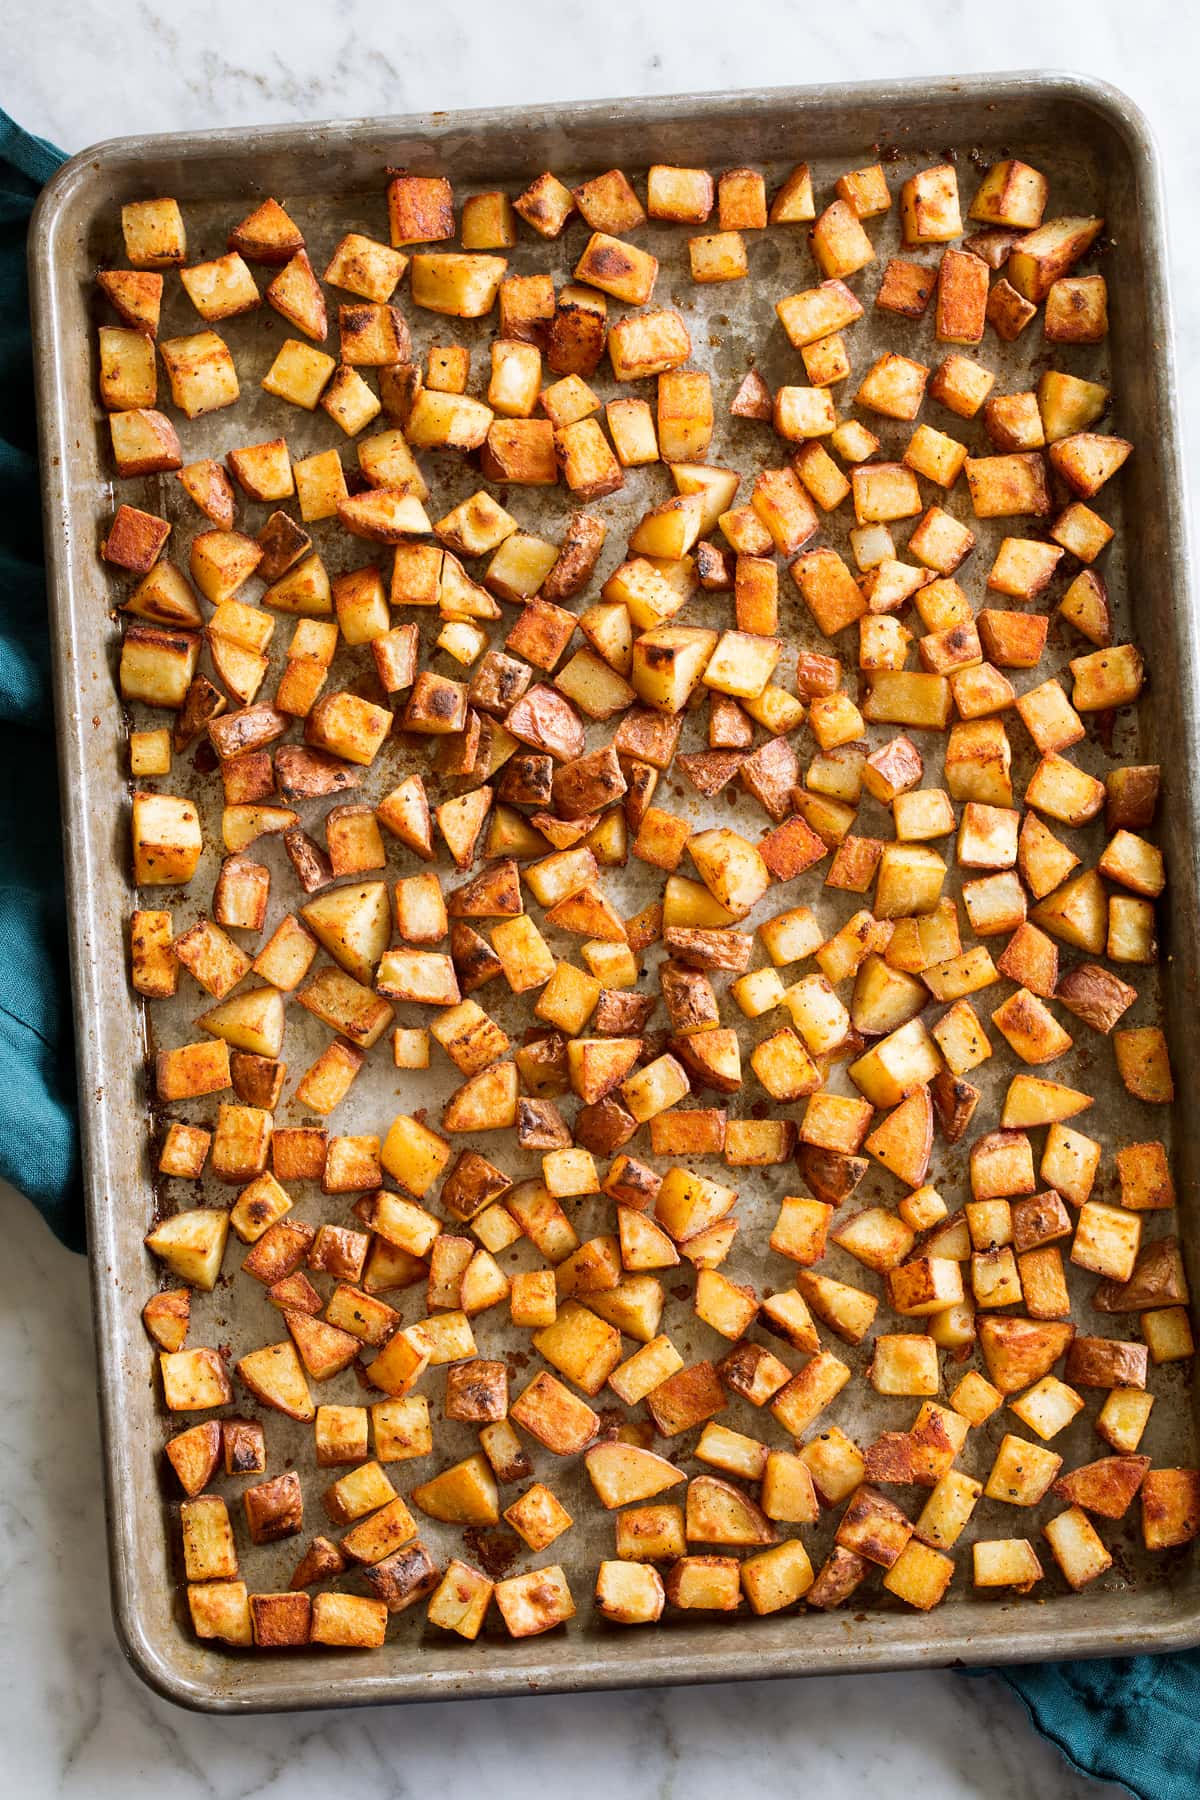 Photo: Crispy browned breakfast potatoes on a sheet pan set on a white marble surface.